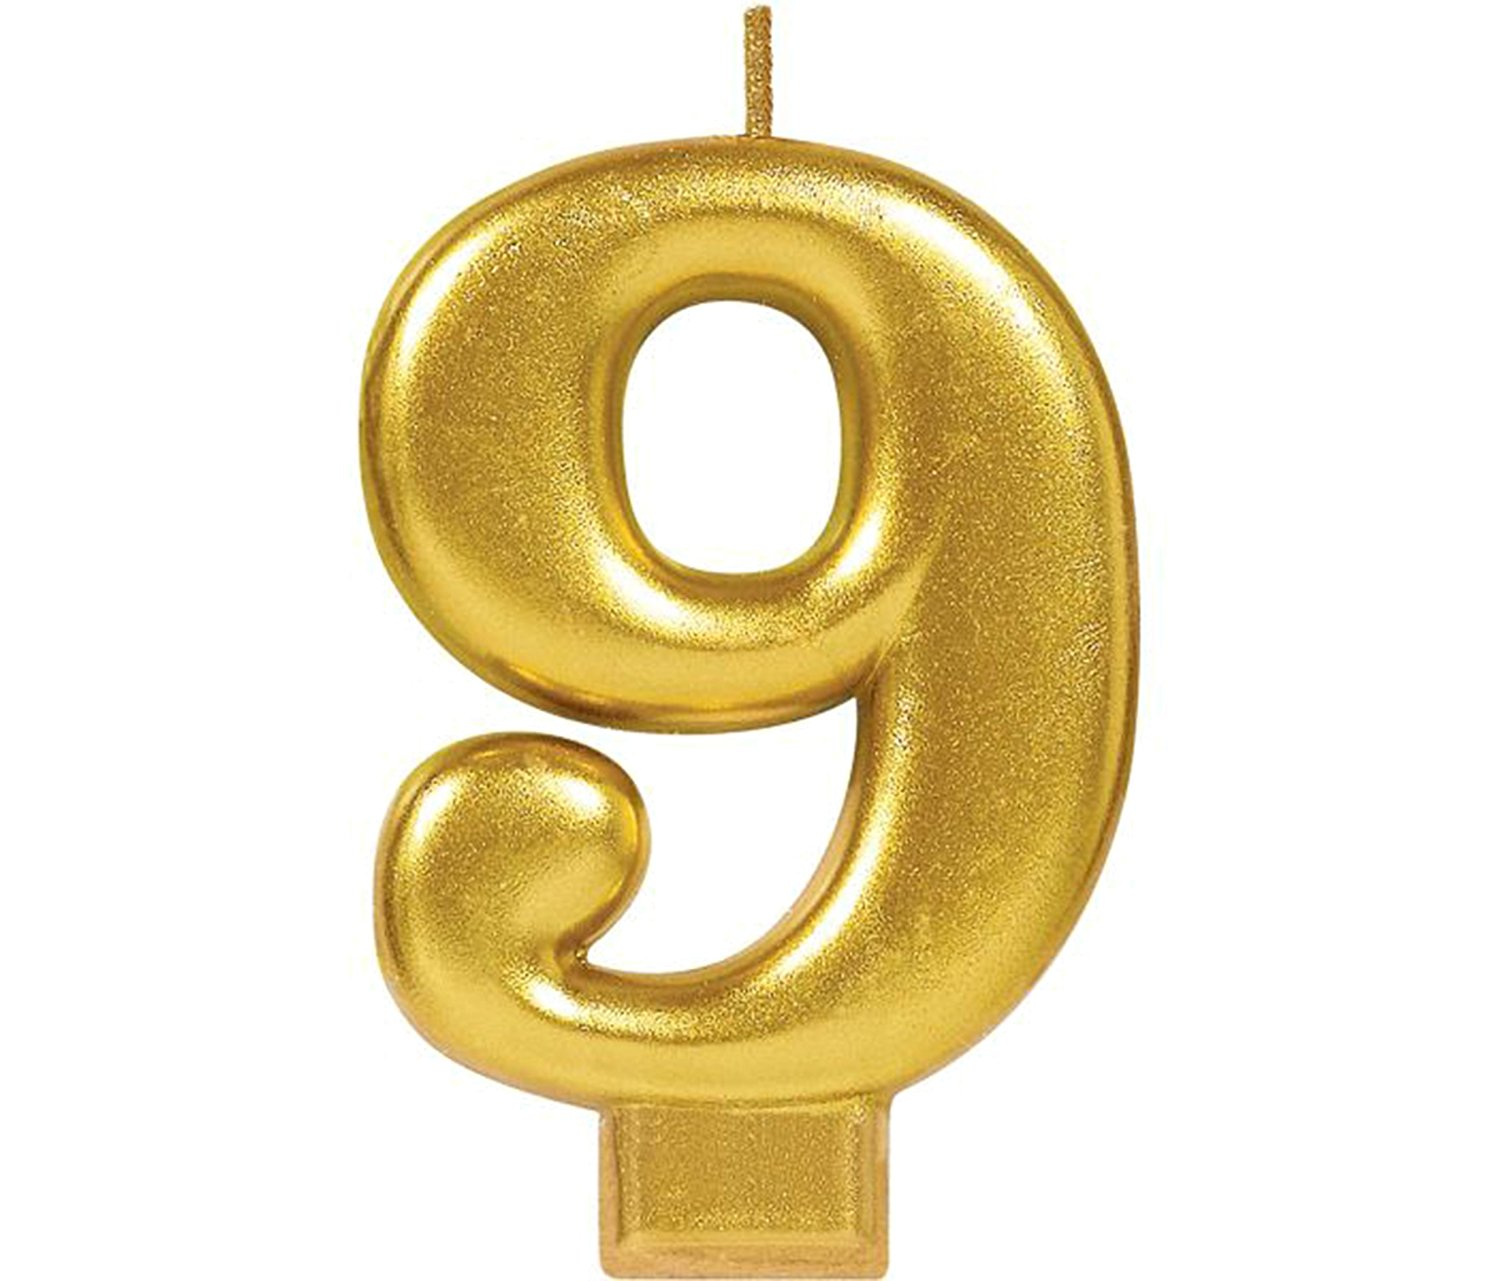 Mozlly Multipack - Amscan Gold Metallic Number 9 Birthday Candle - 3.25 inch - Gold Themed Birthday, Anniversary Parties - Novelty Party Supplies (Pack of 6)